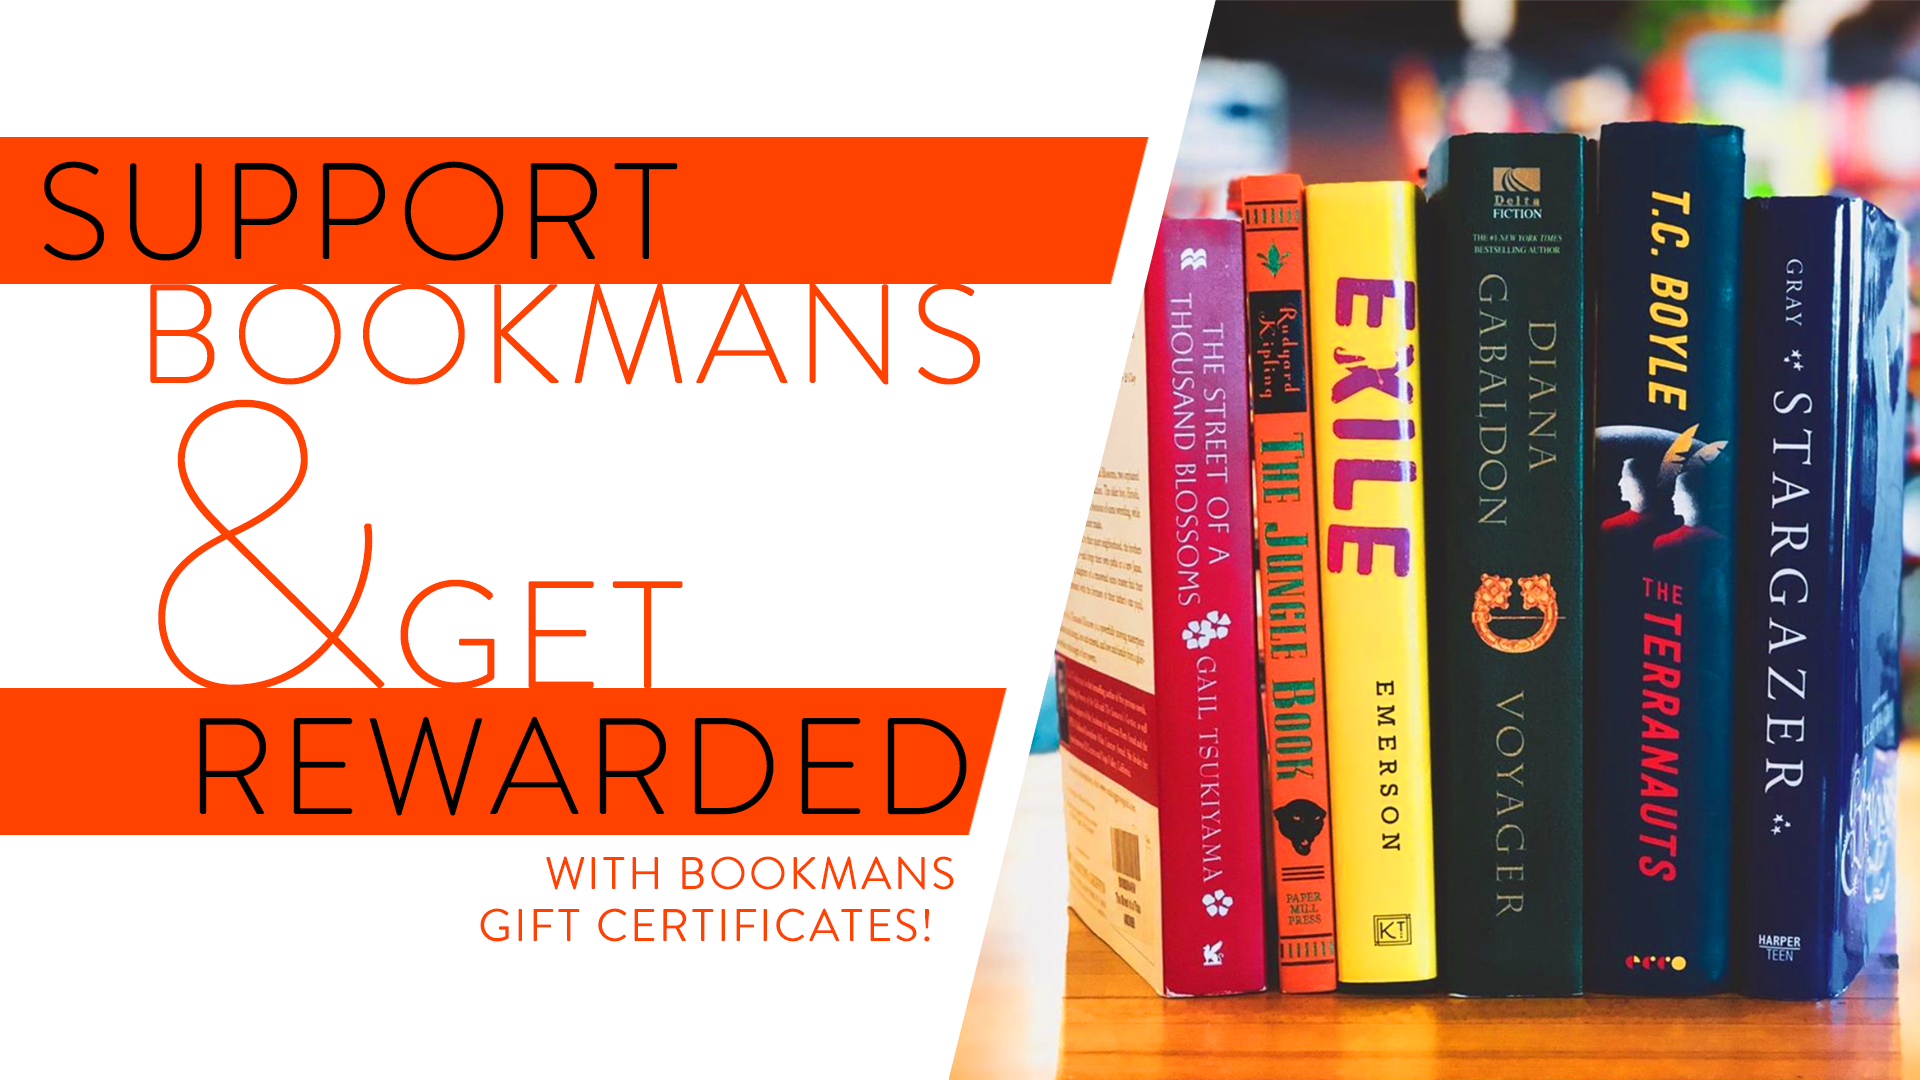 Bookmans gift certificates support bookmans get reward with the purchase of a gift certificate